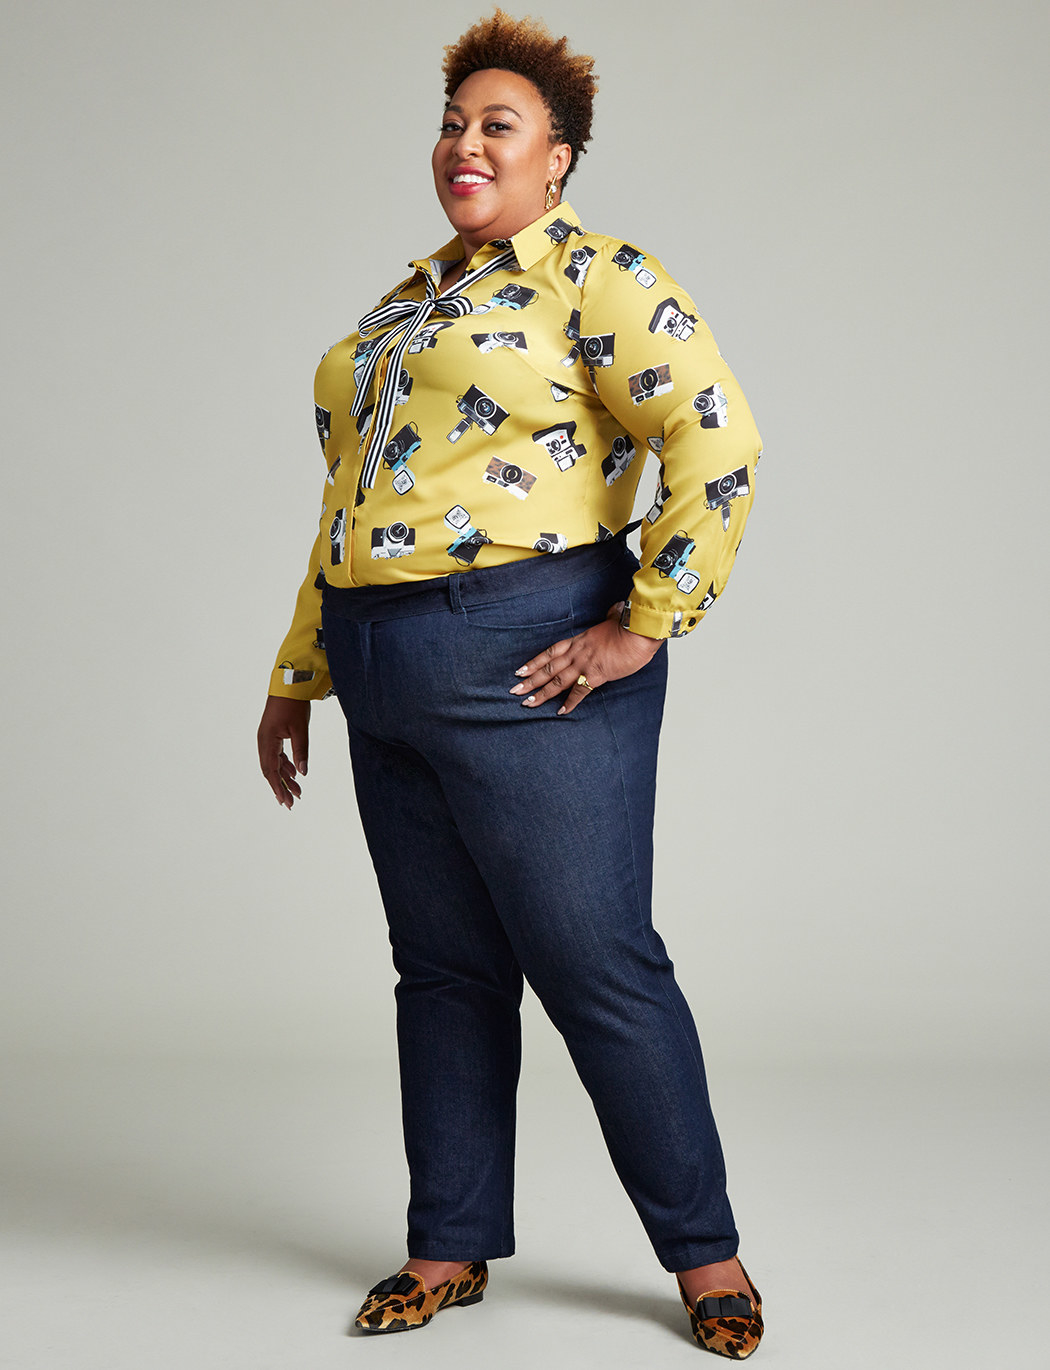 79d93edabace 15 Of The Best Places To Buy Plus-Size Jeans